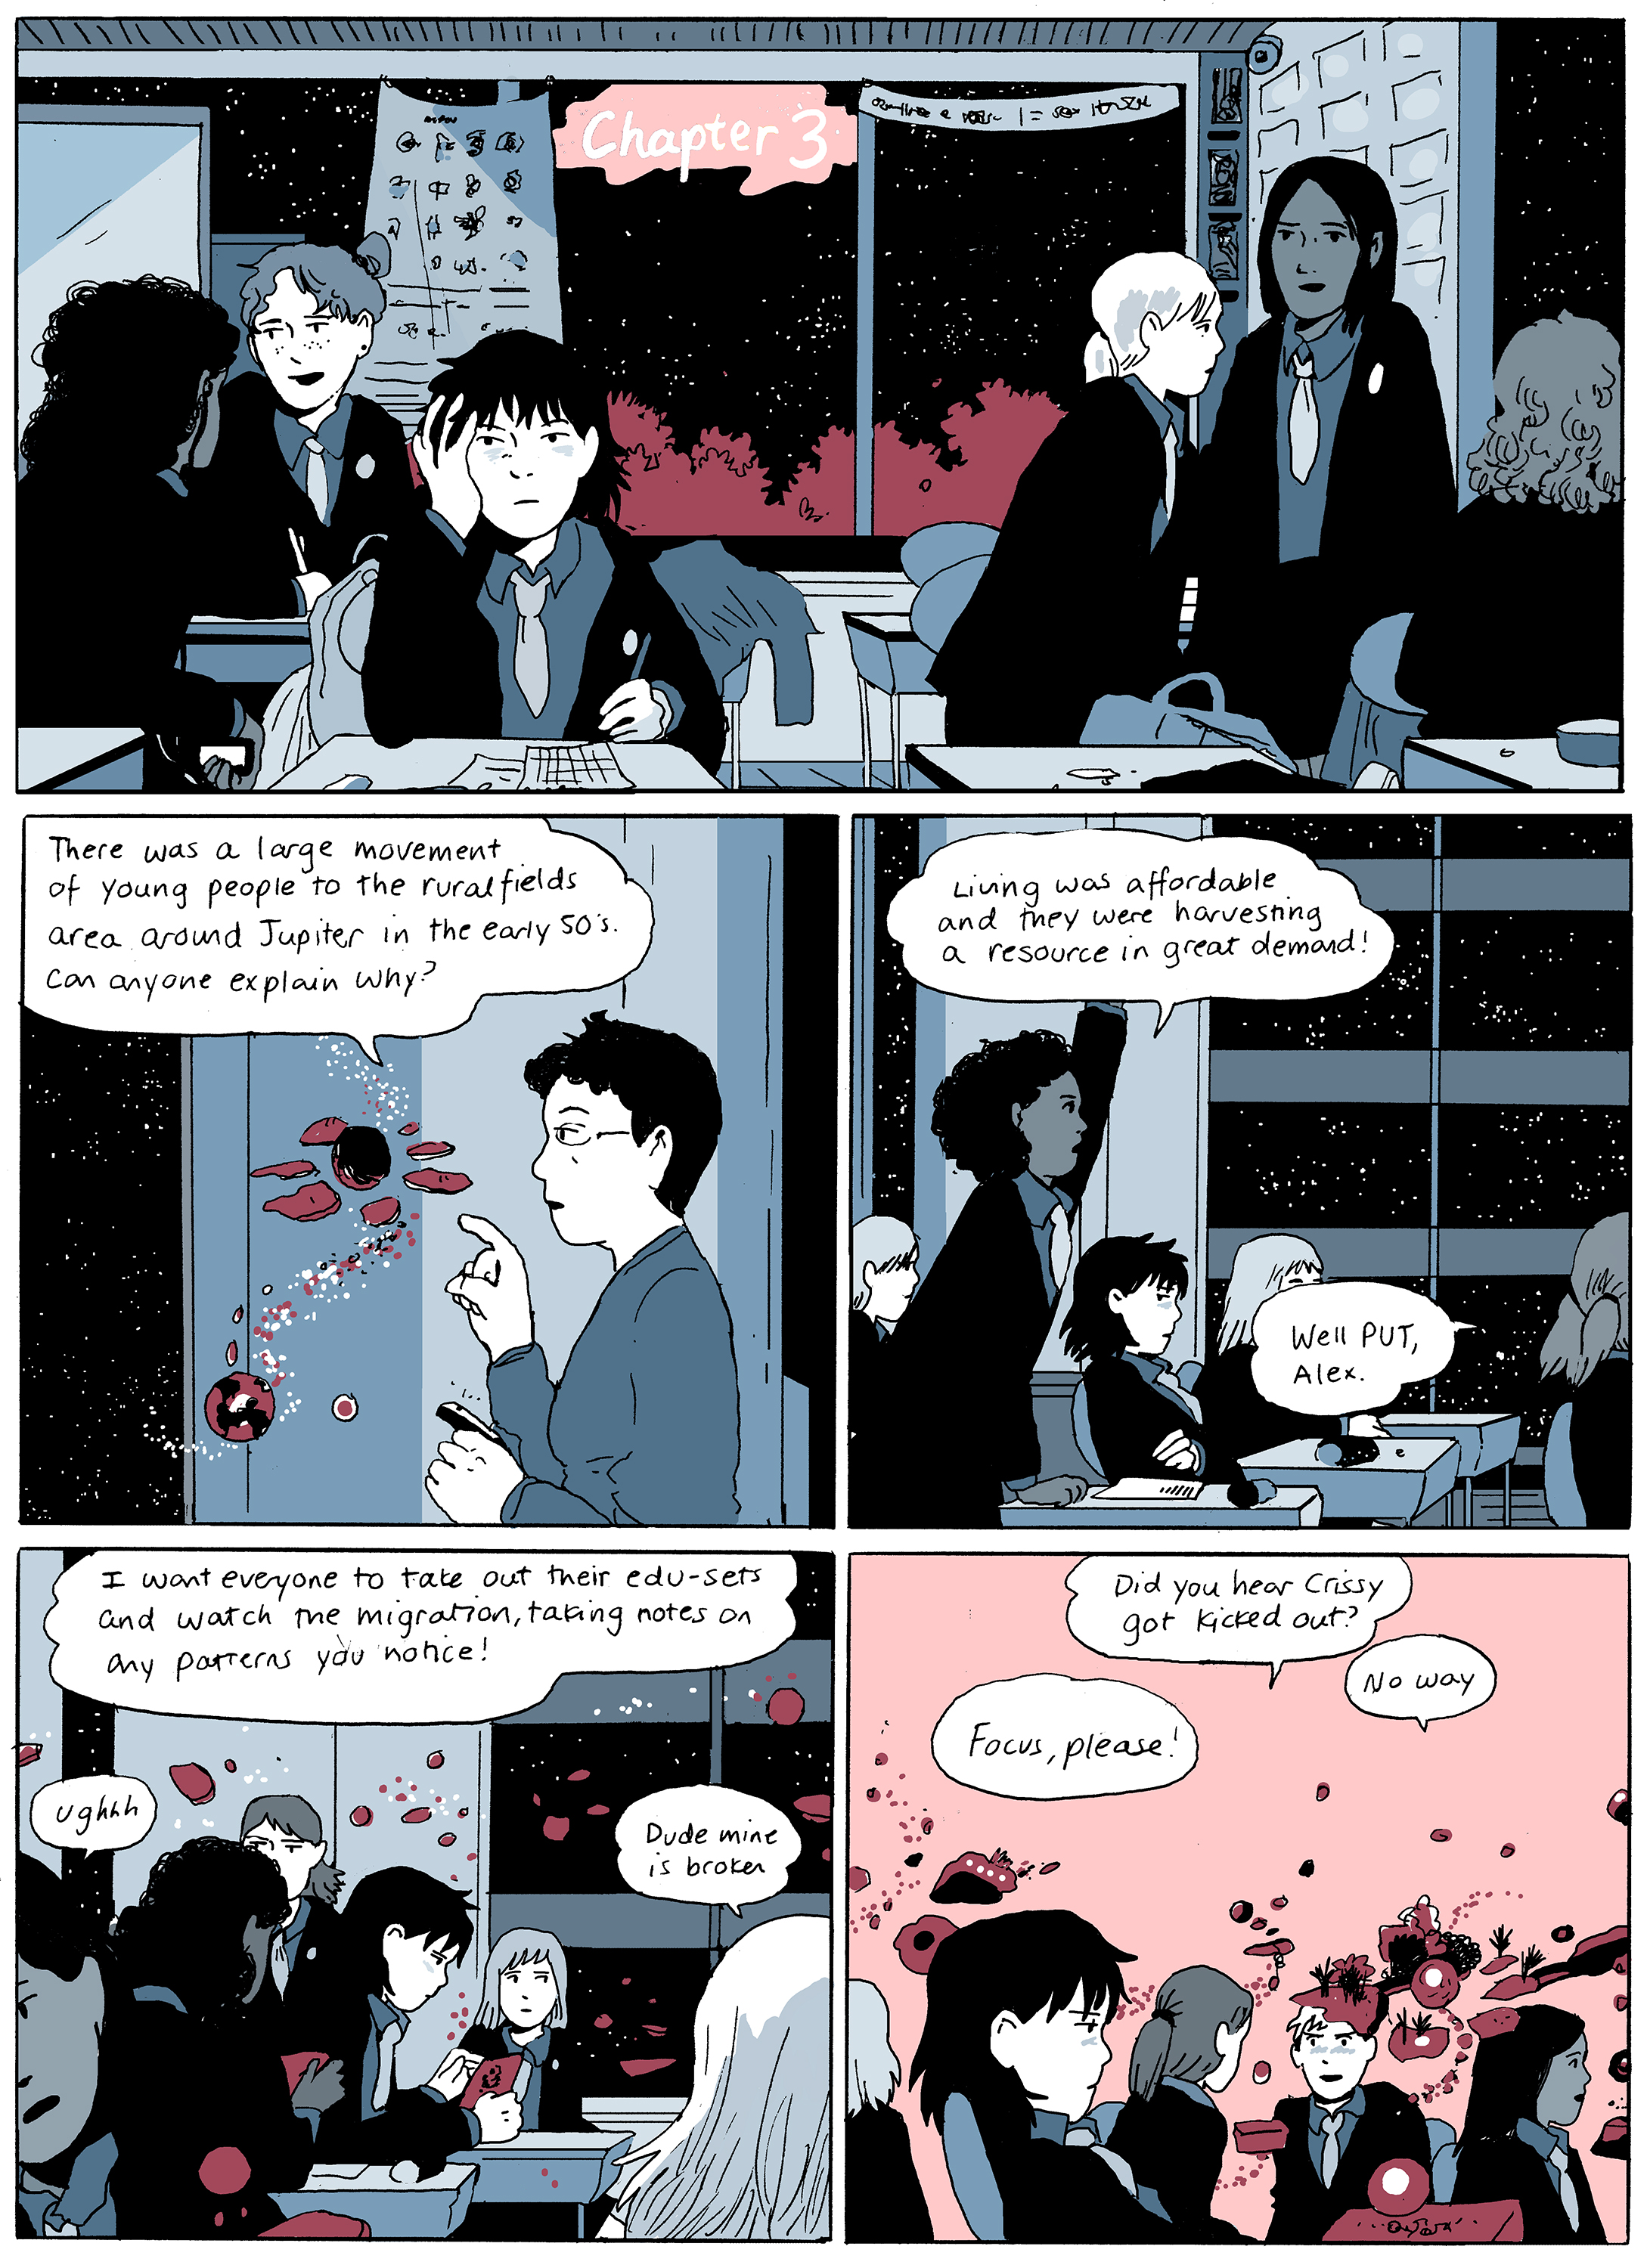 chapter03_page01.jpg